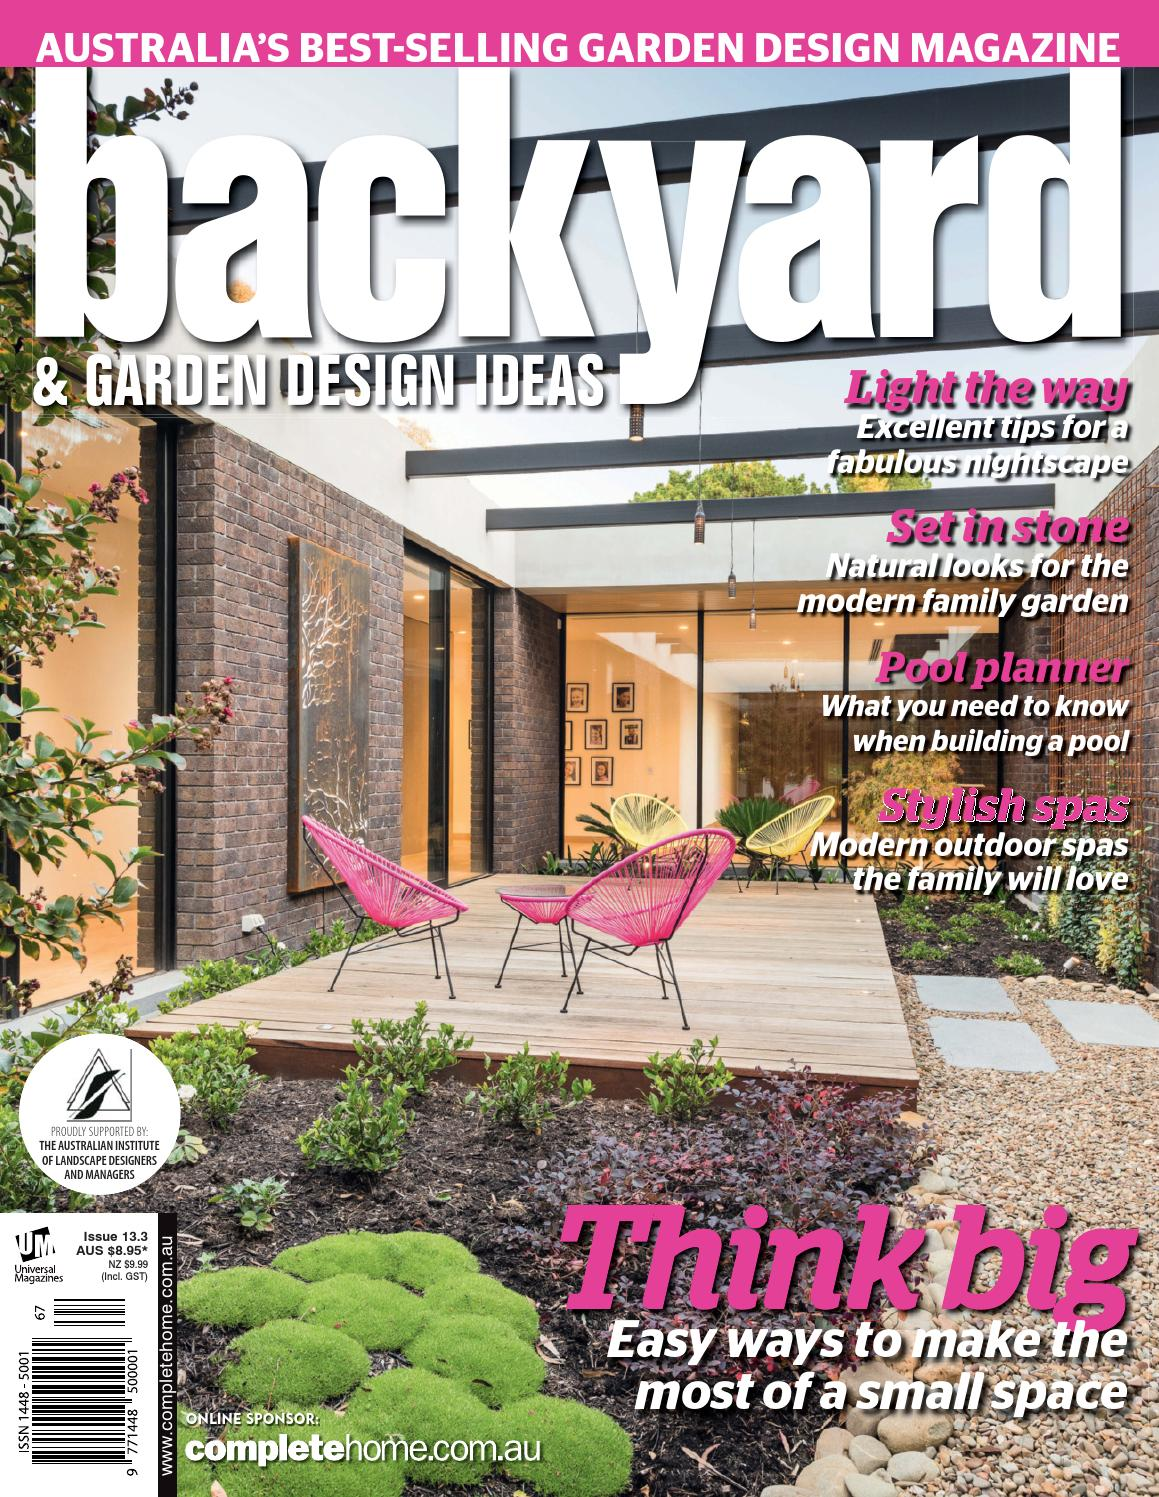 Home Garden Design Fall 2016 by Palo Alto Weekly issuu